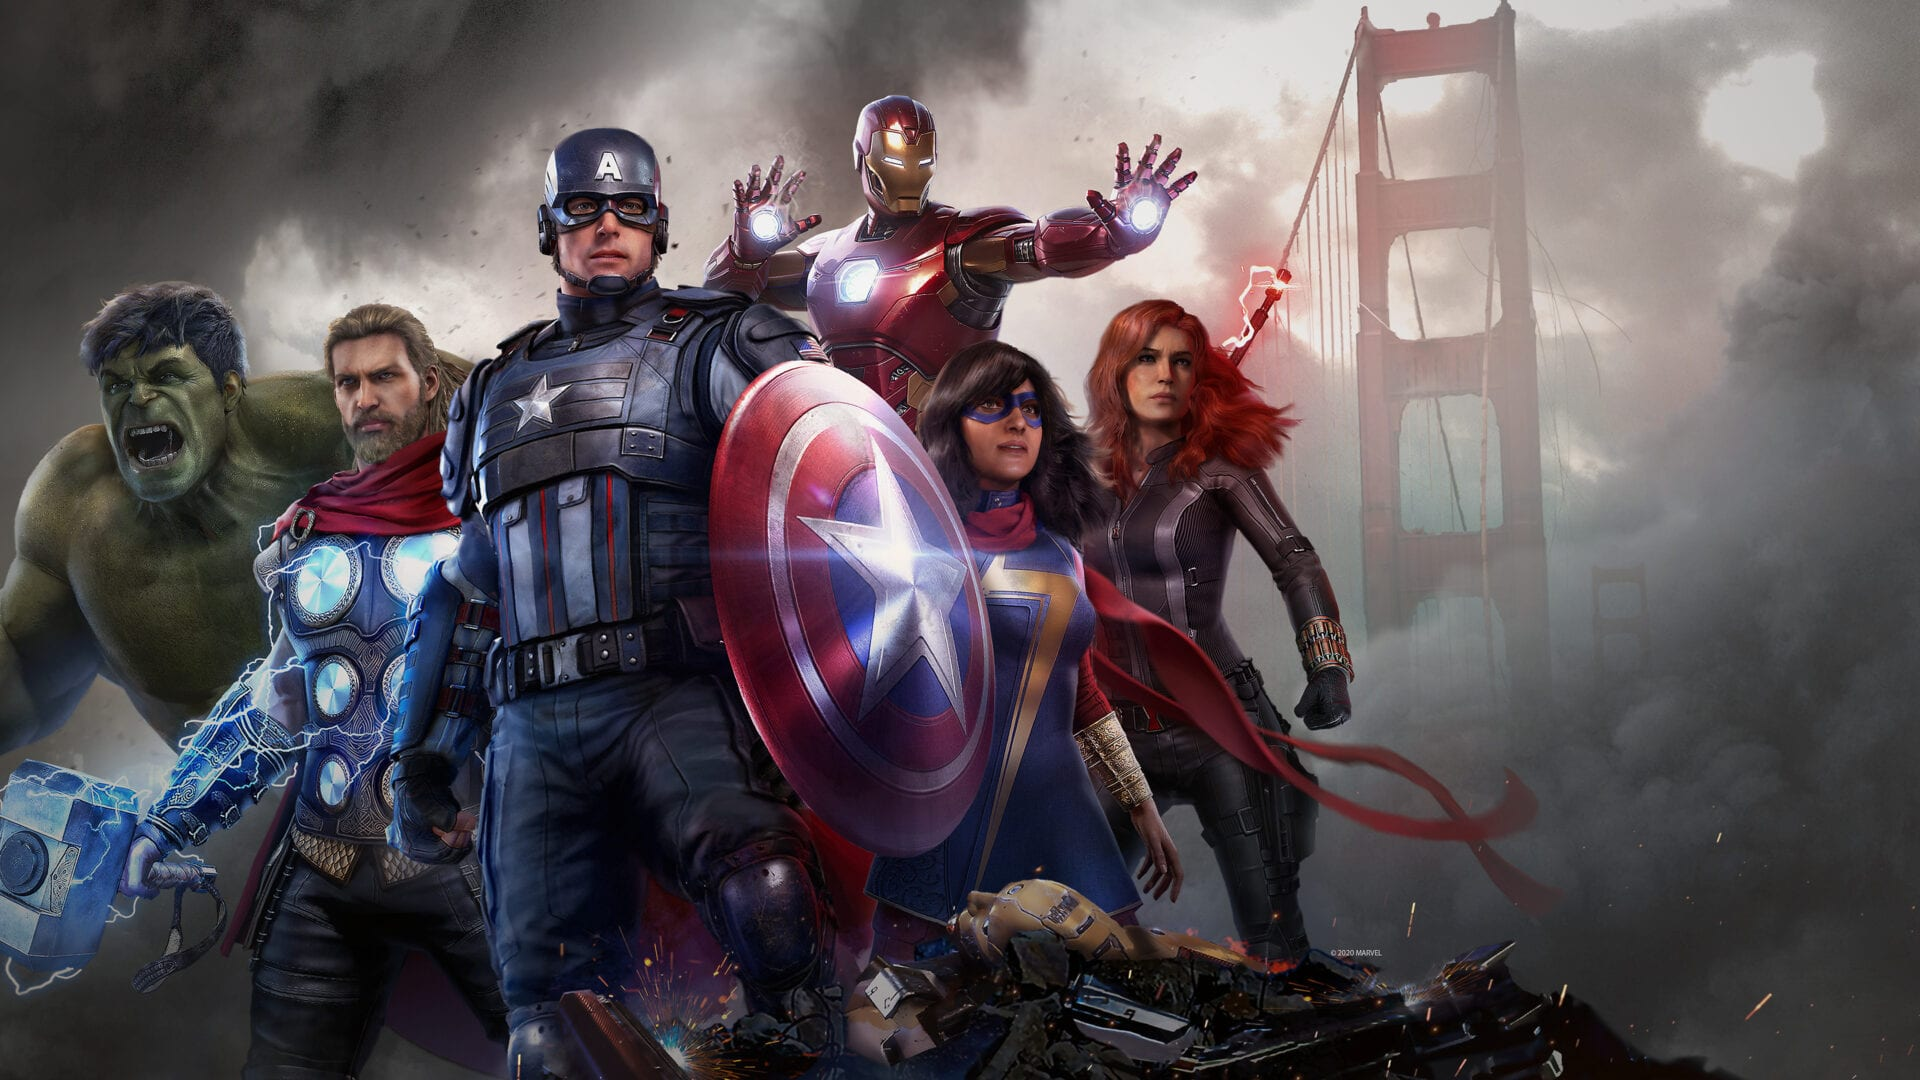 marvel's avengers, playable characters